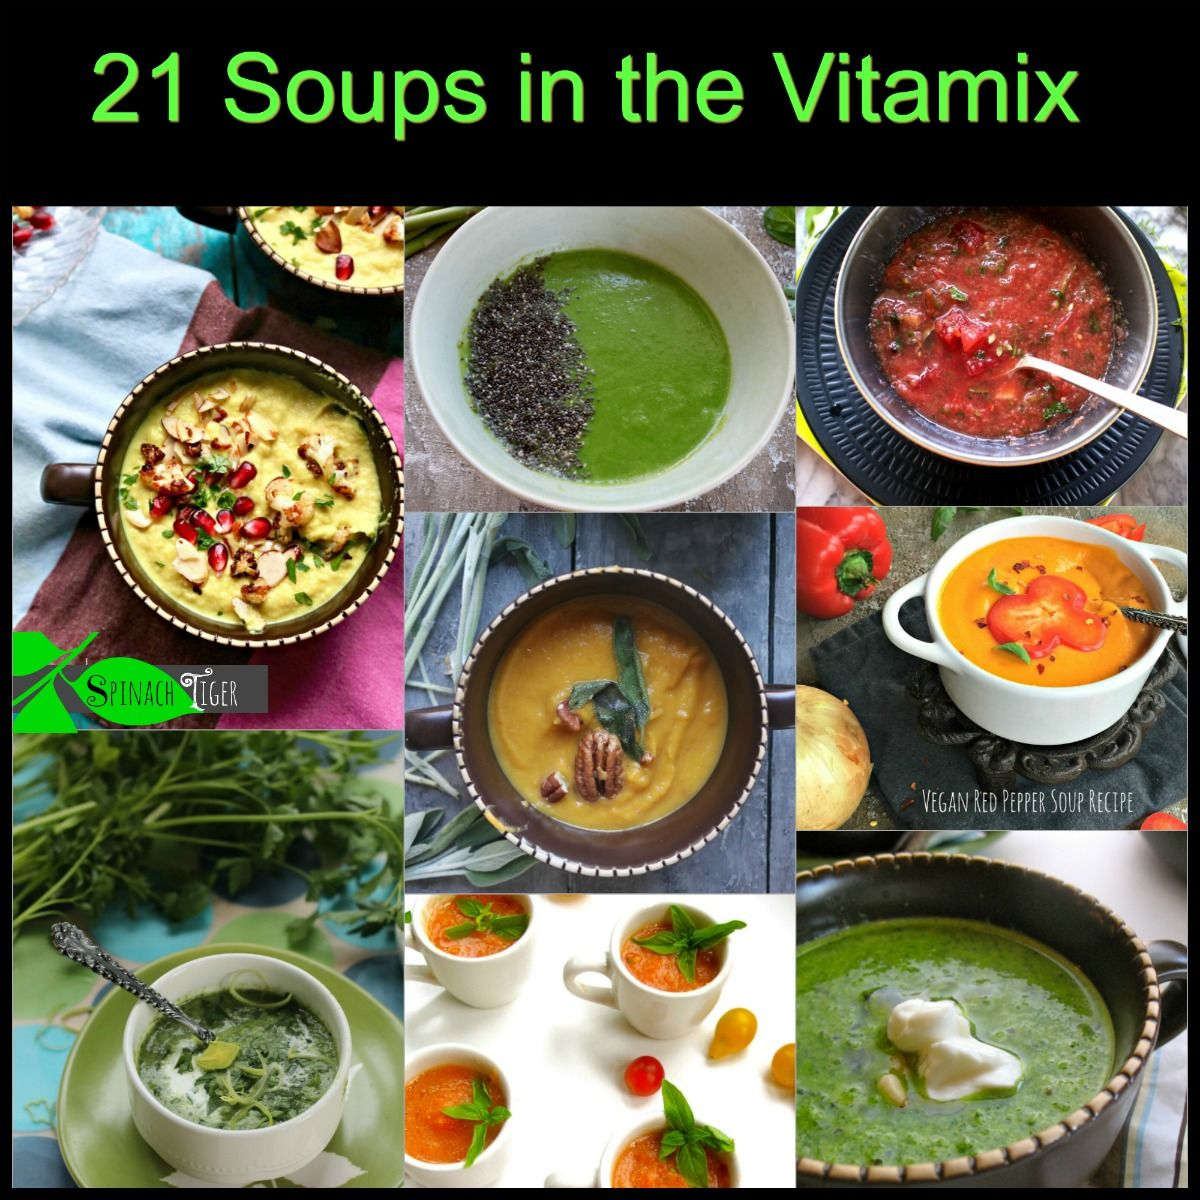 Vitamix Soup Recipes Made In Minutes Spinach Tiger In 2020 Soup Recipes Vitamix Soup Paleo Recipes